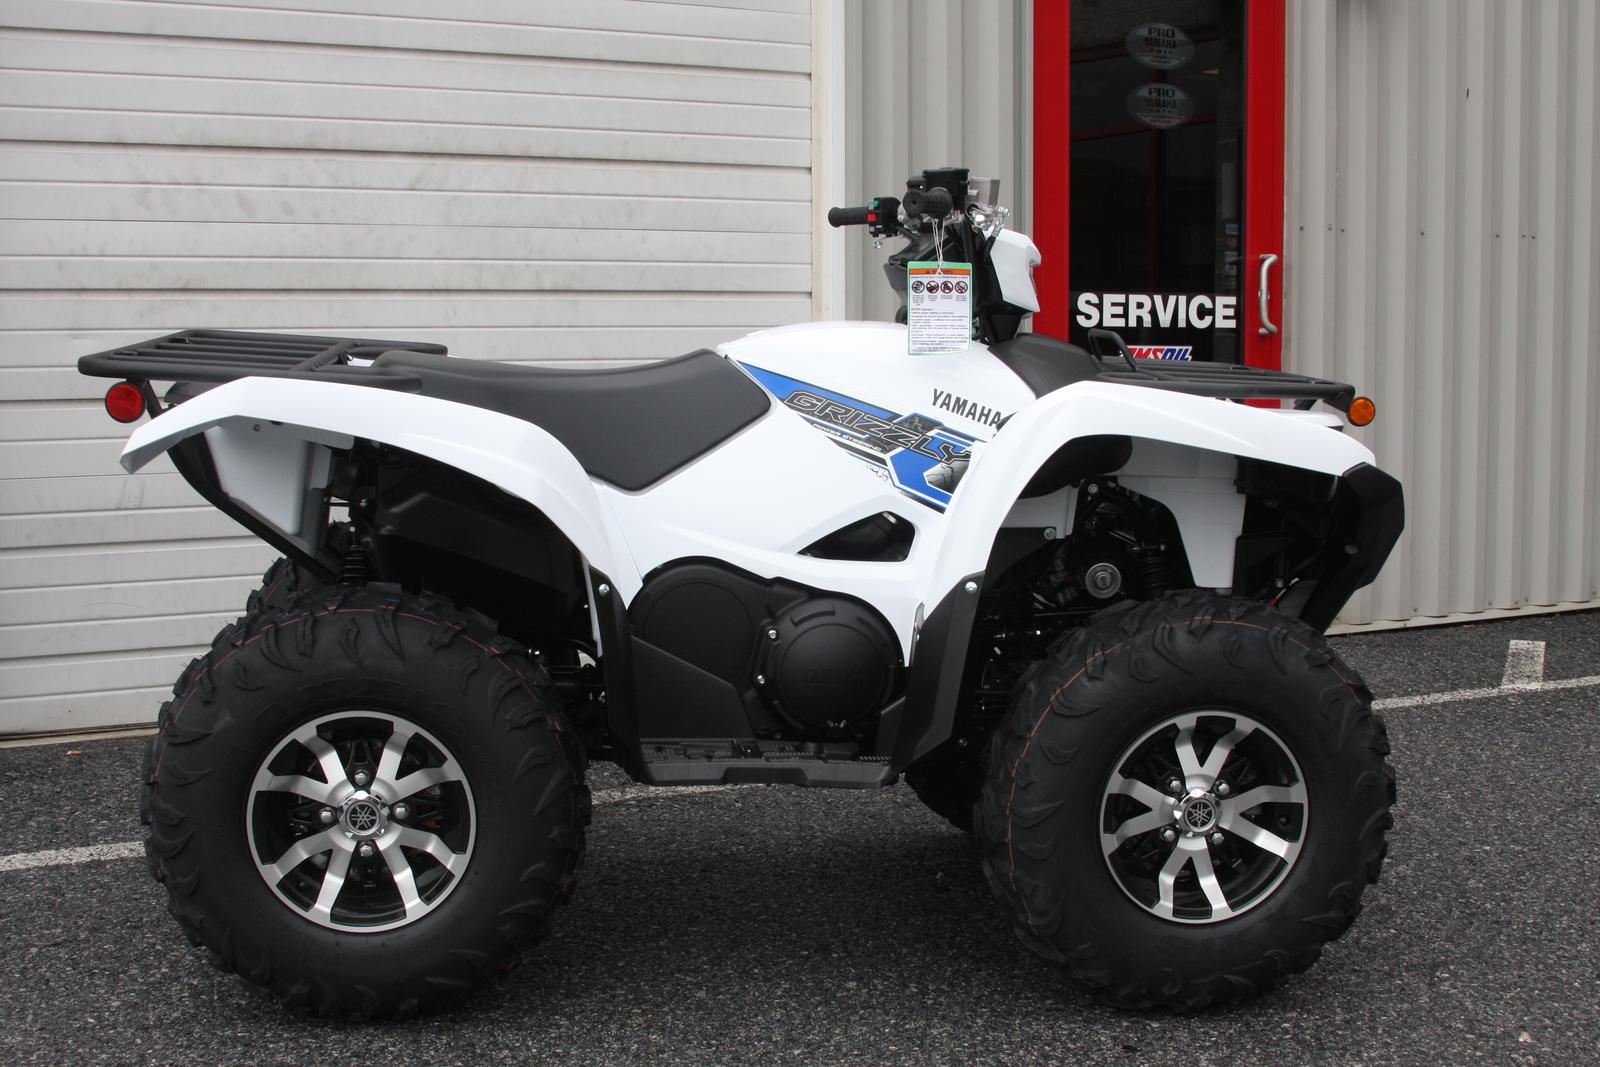 2019 Yamaha GRIZZLY 700 EPS for sale in YORK, PA | AMS Action